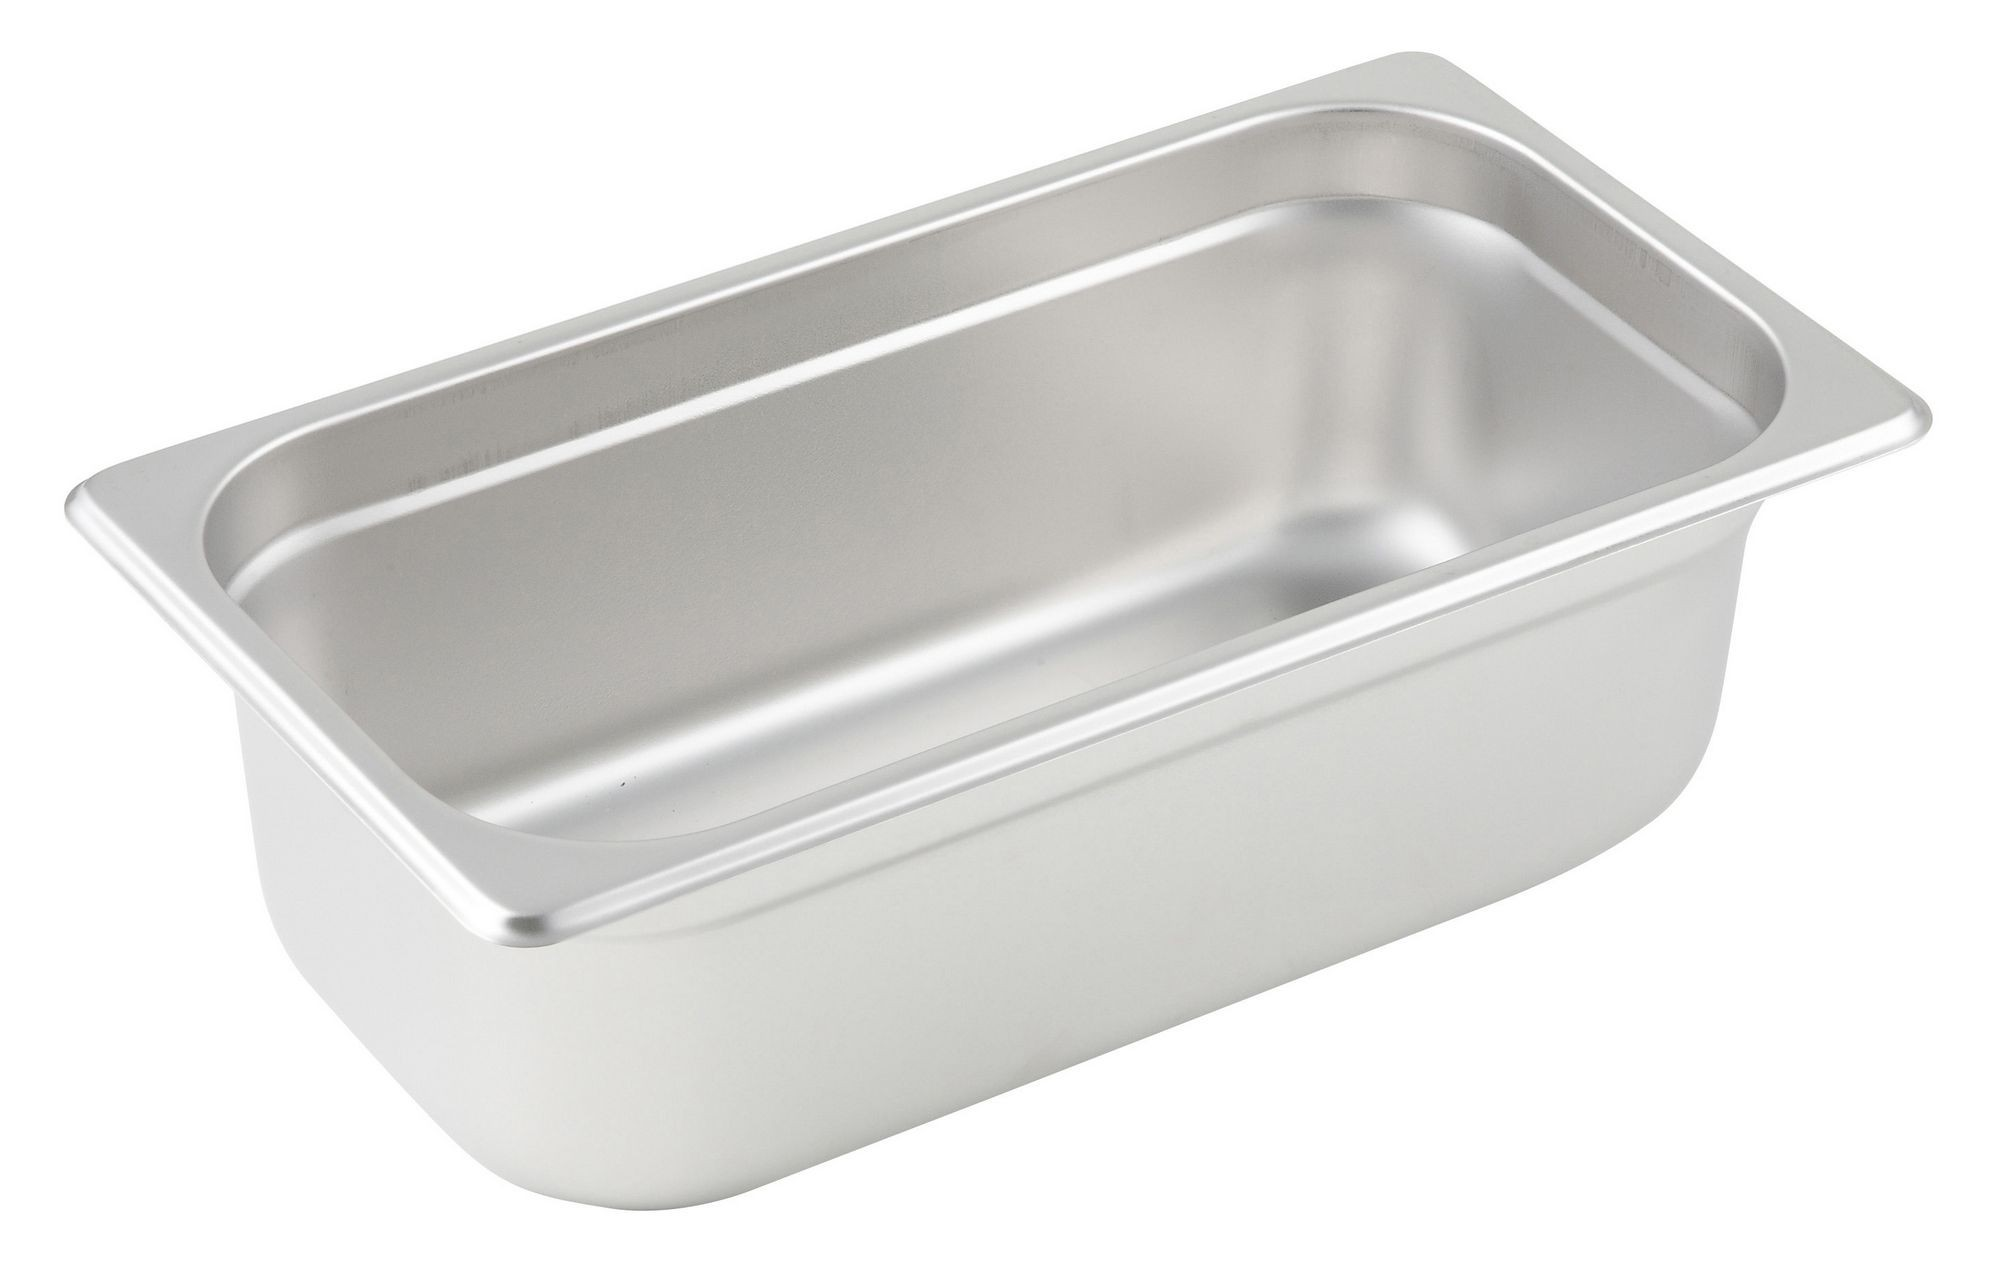 "Winco SPJM-304 1/3 Size Anti-Jam 24 Gauge Steam Table Pan 4"" Deep"